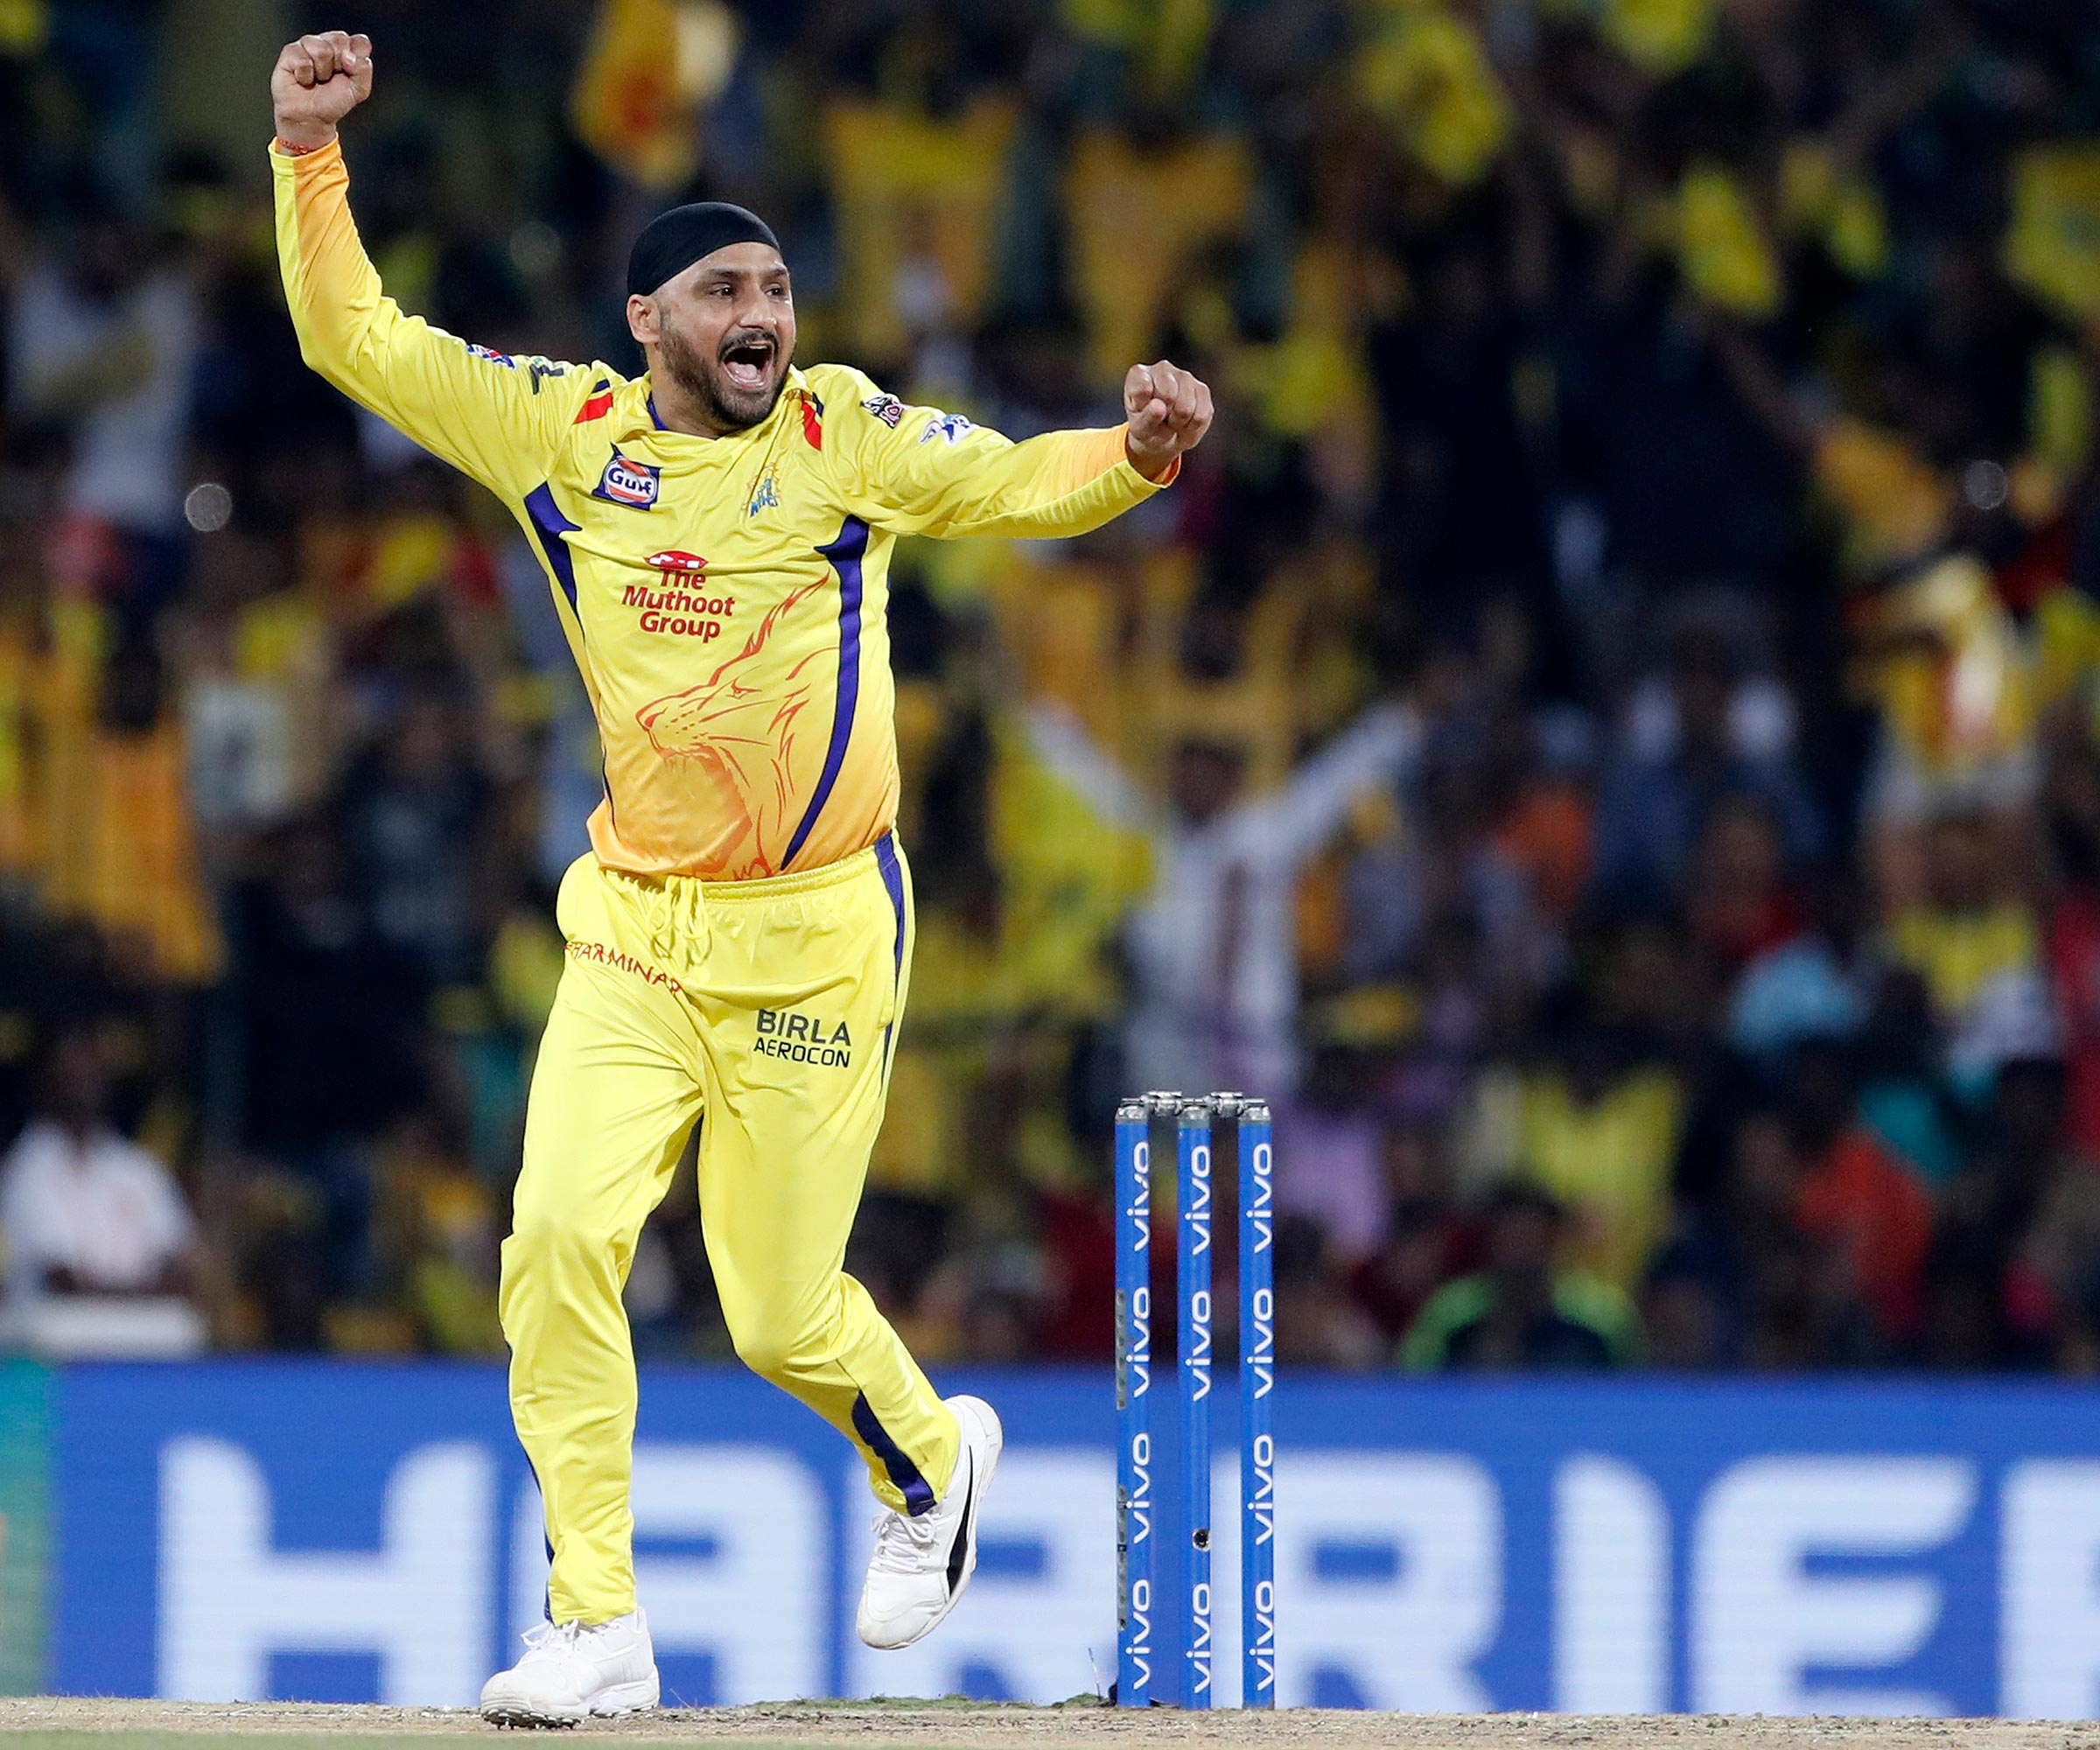 Harbhajan was the star for the Super Kings // AAP